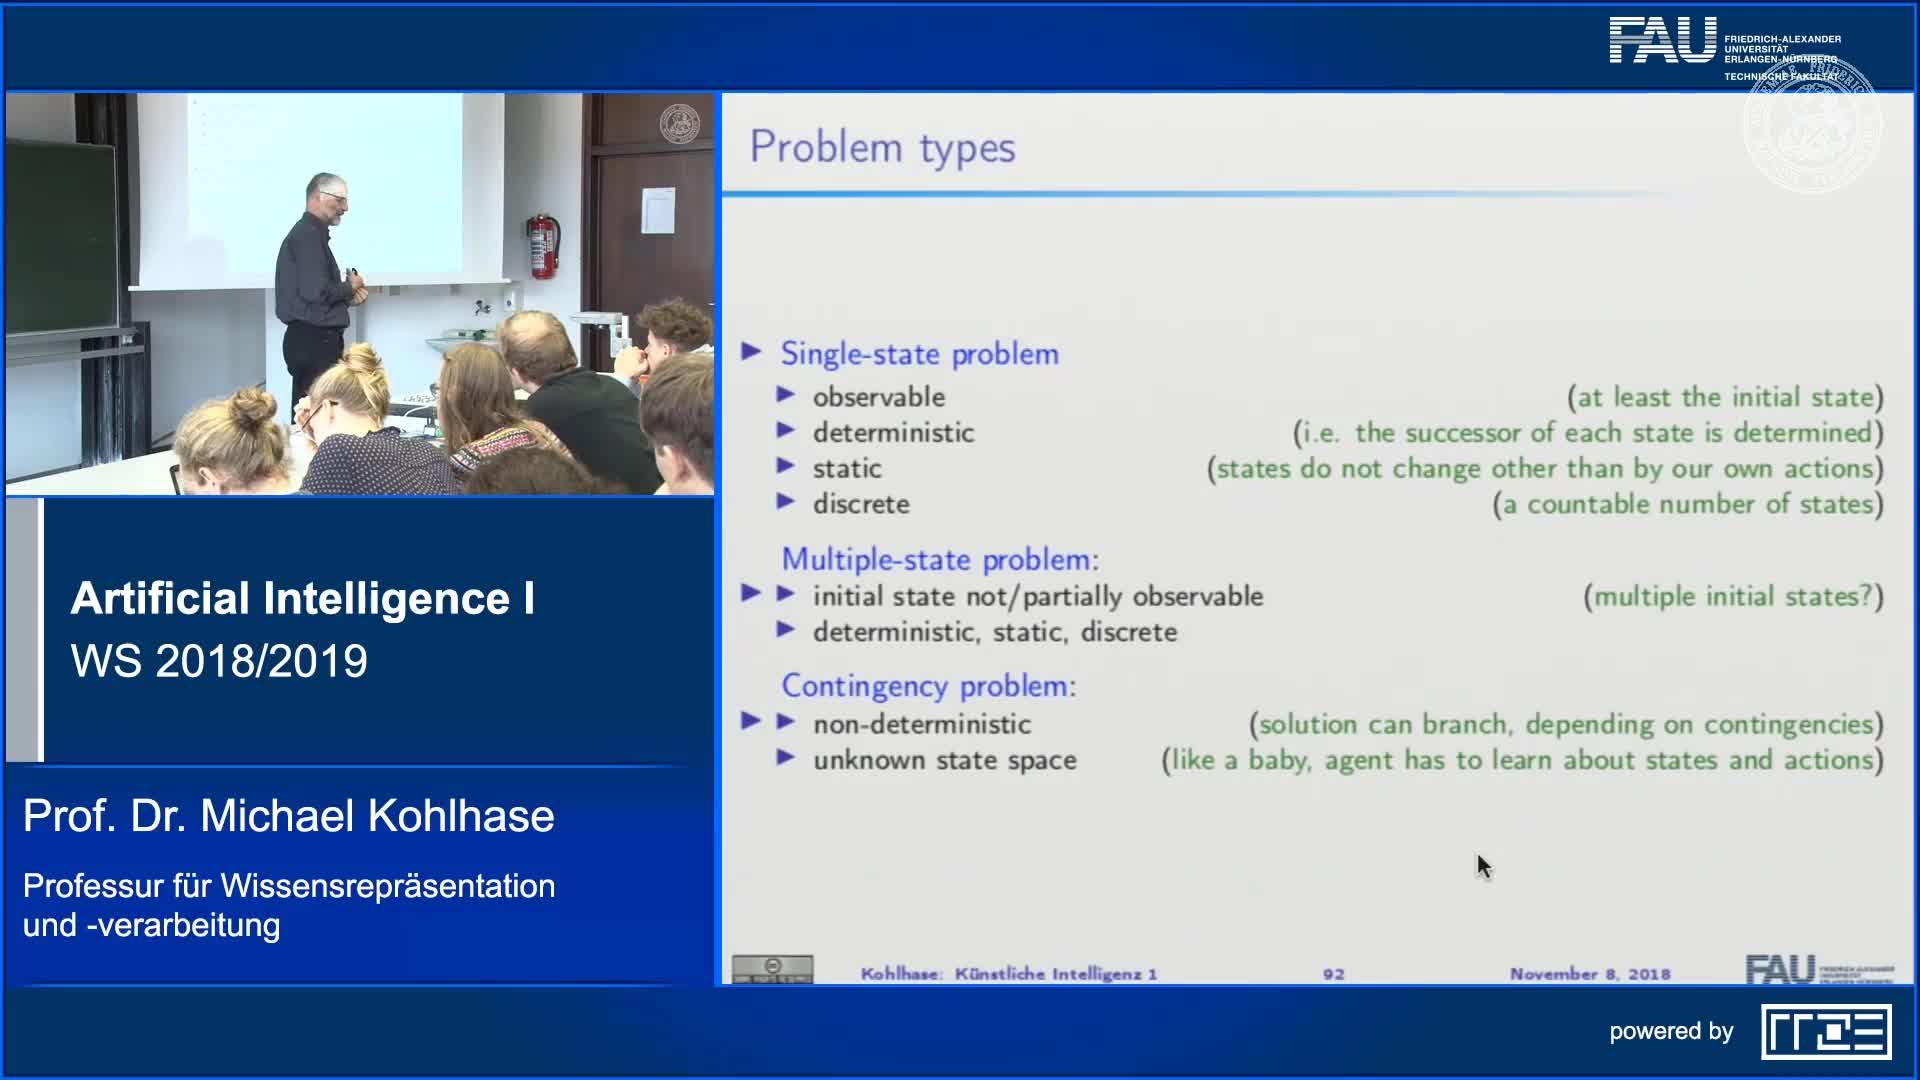 Problem Types preview image